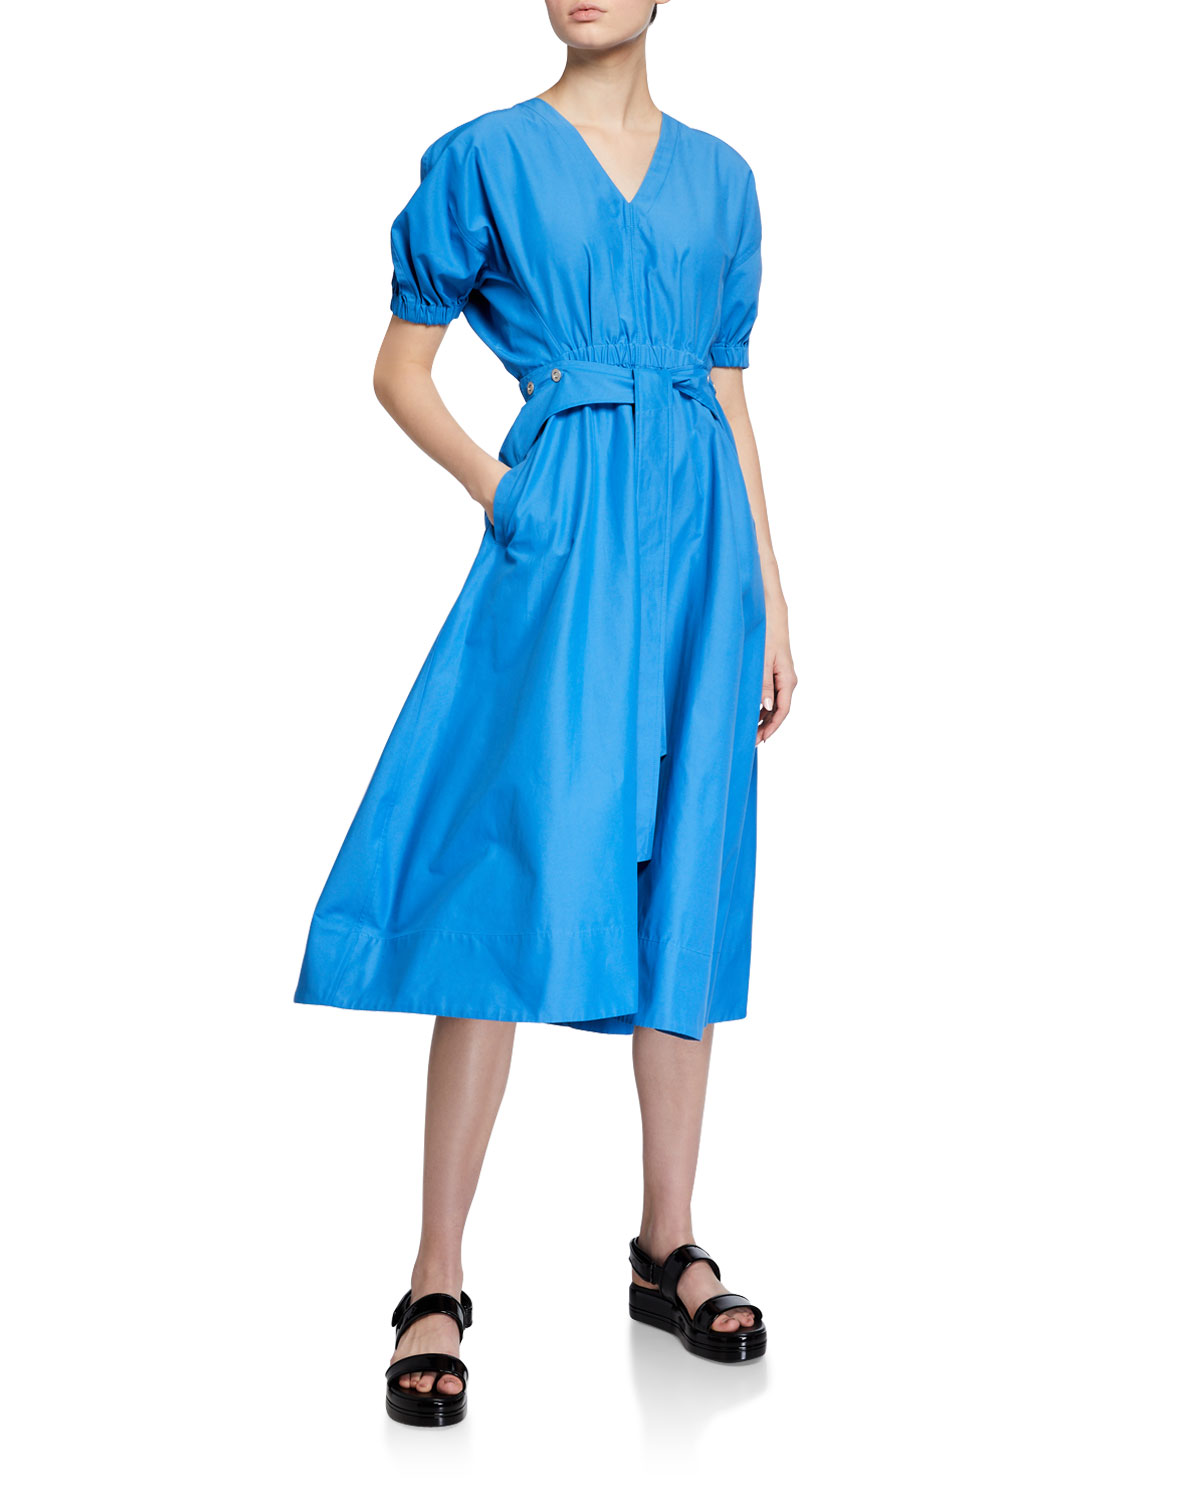 3.1 Phillip Lim Utility Belted Dress with Gathered Detail